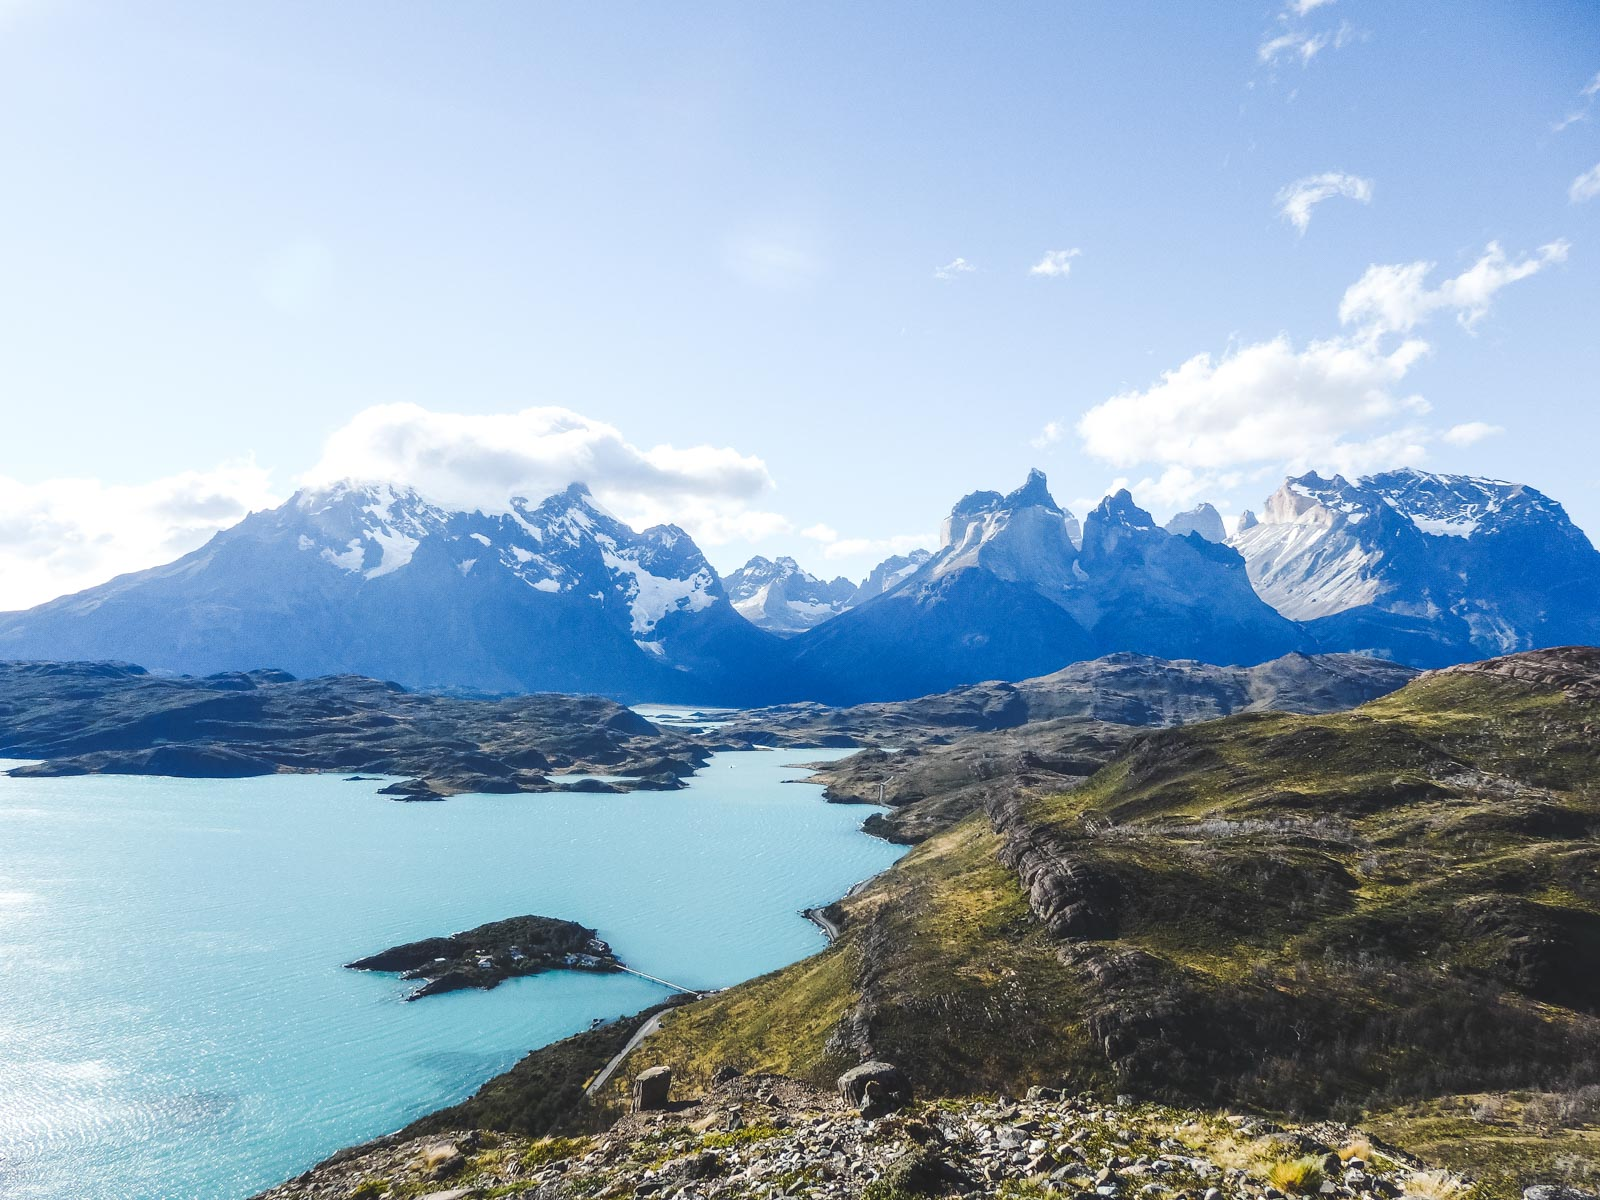 Step by step guide for planning, trekking and travelling Torres Del Paine. The view from Condor point looking out onto Torres Del Paine and lake Pehoe